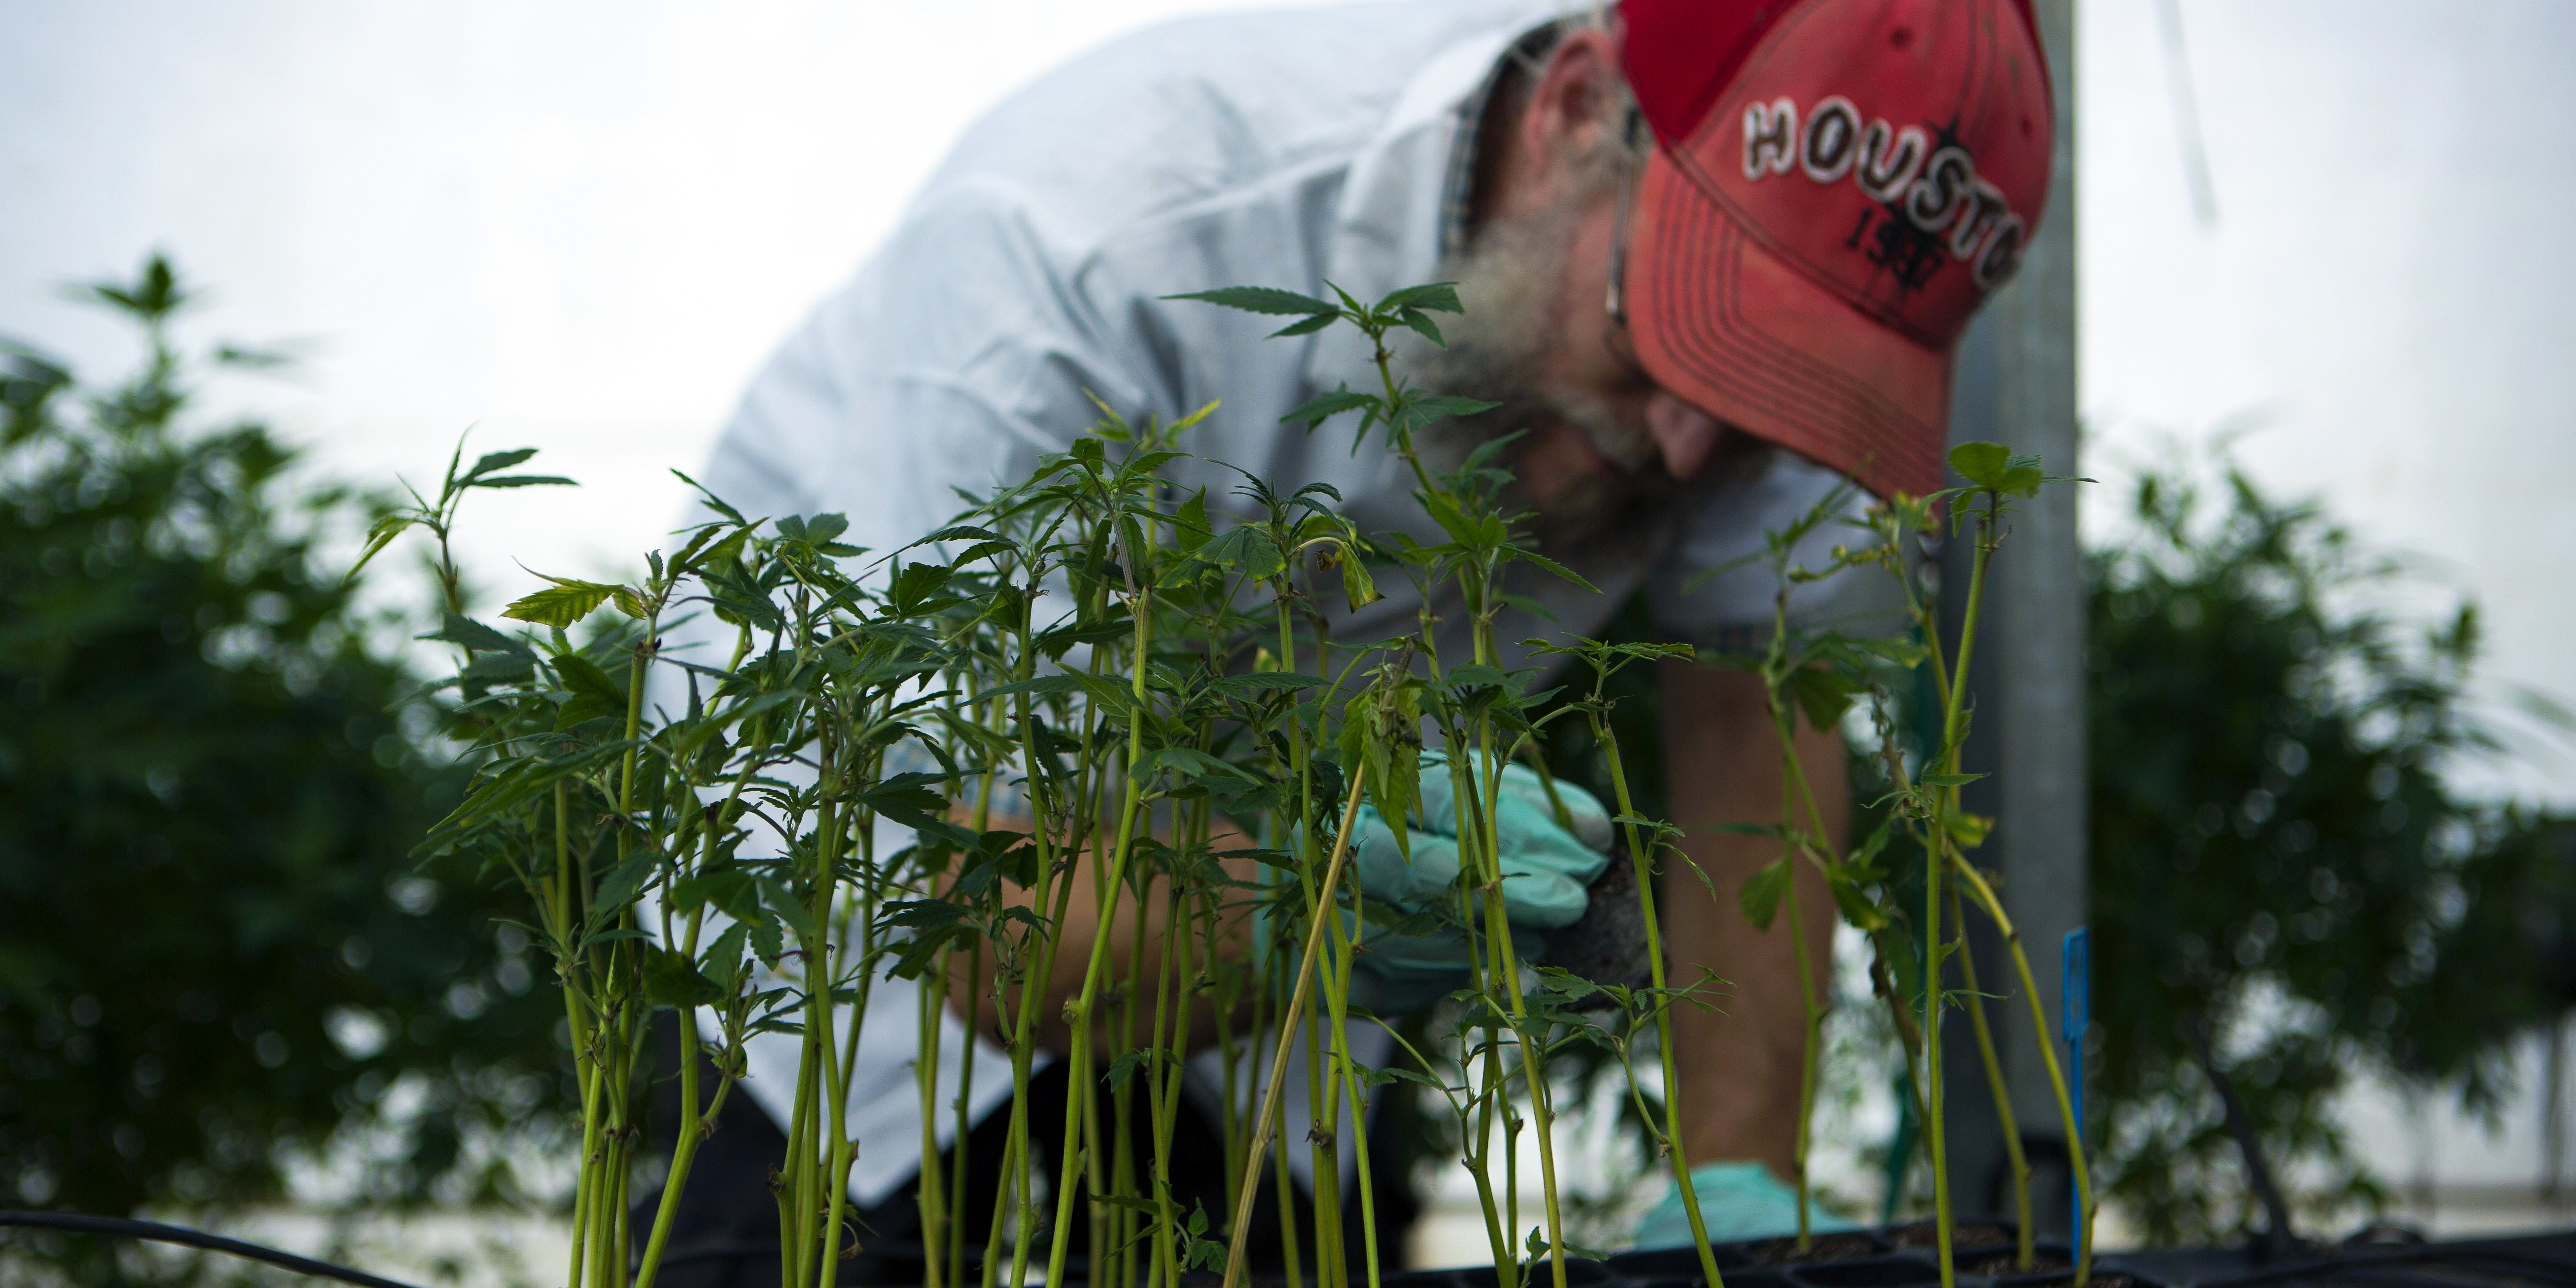 An Israeli man works on marijuana saplings at the Tikum Olam greenhouse just outside of Safed, Israel. The acclaimed greenhouse has been cultivating flower for cannabis research. (Photo by Menahem Kahana/AFP/Getty Images)